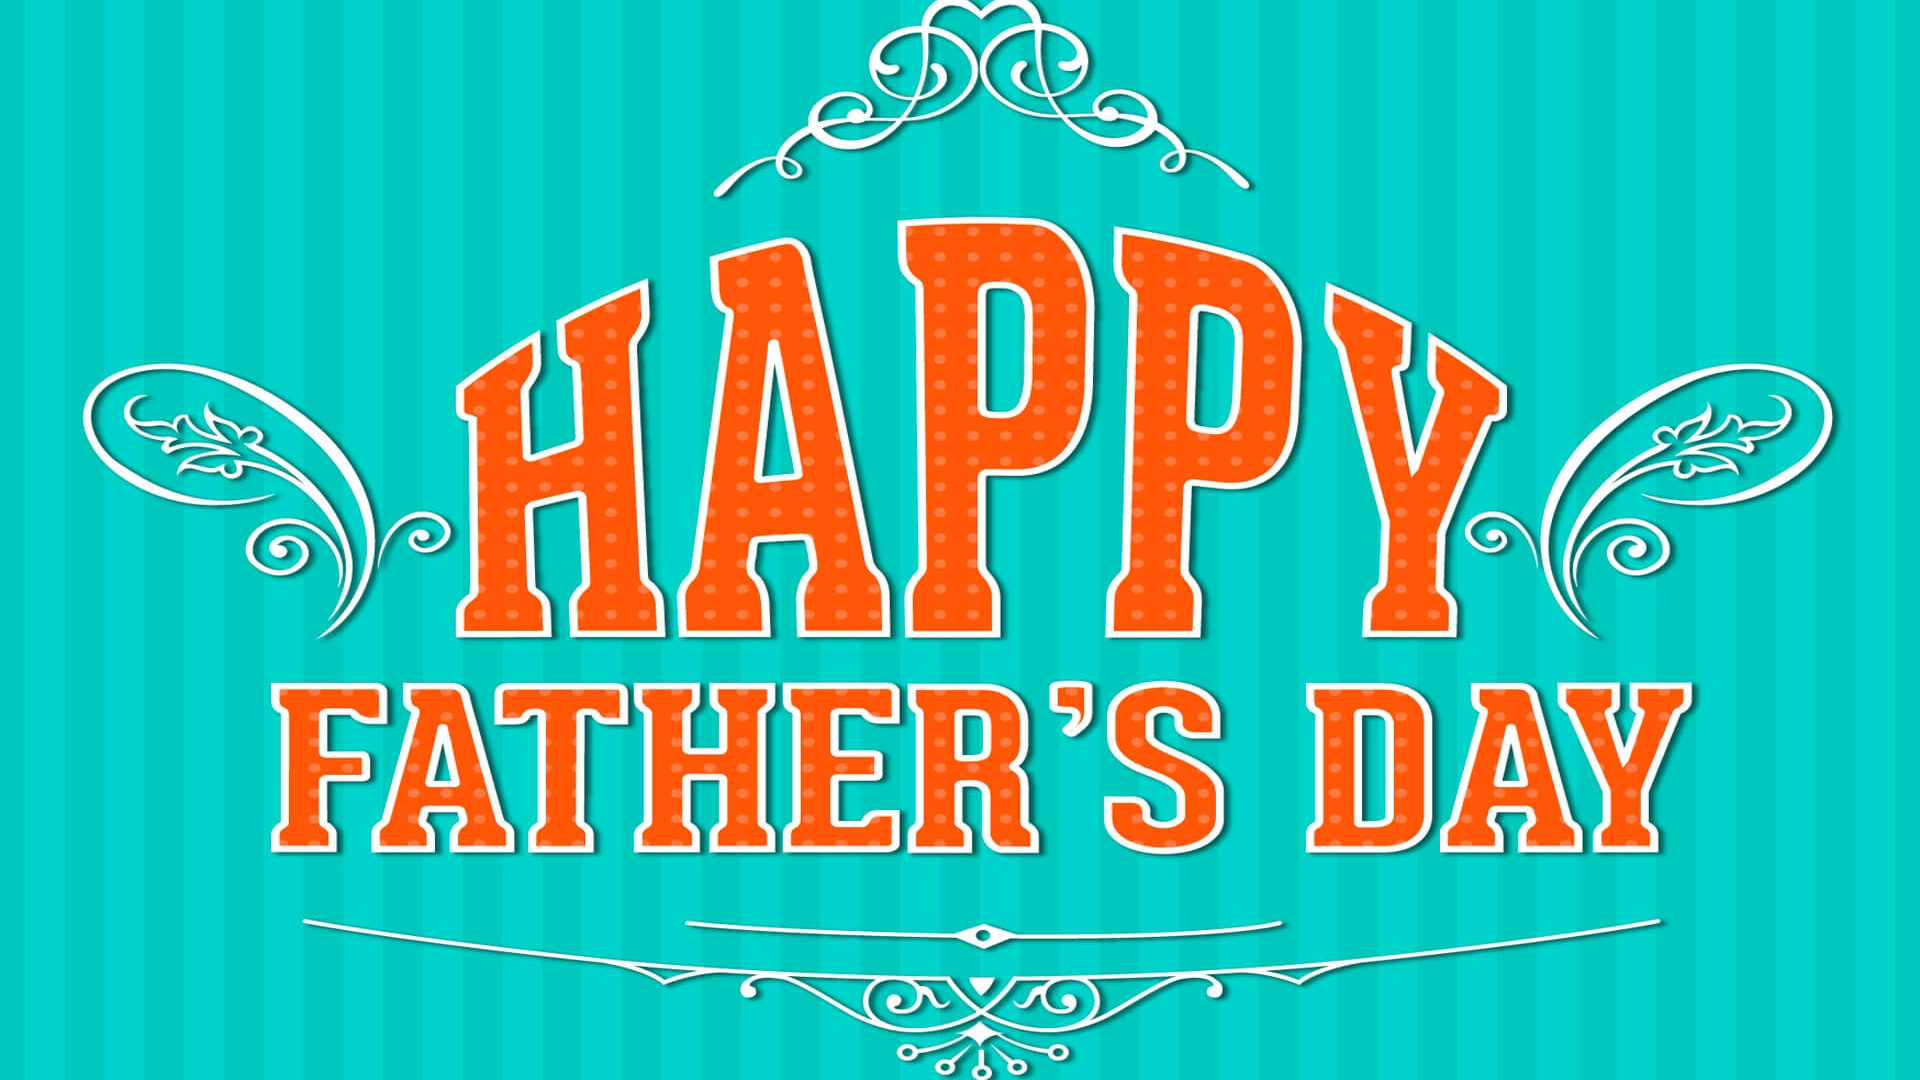 Father's Day 2019 best wishes messages and quotes